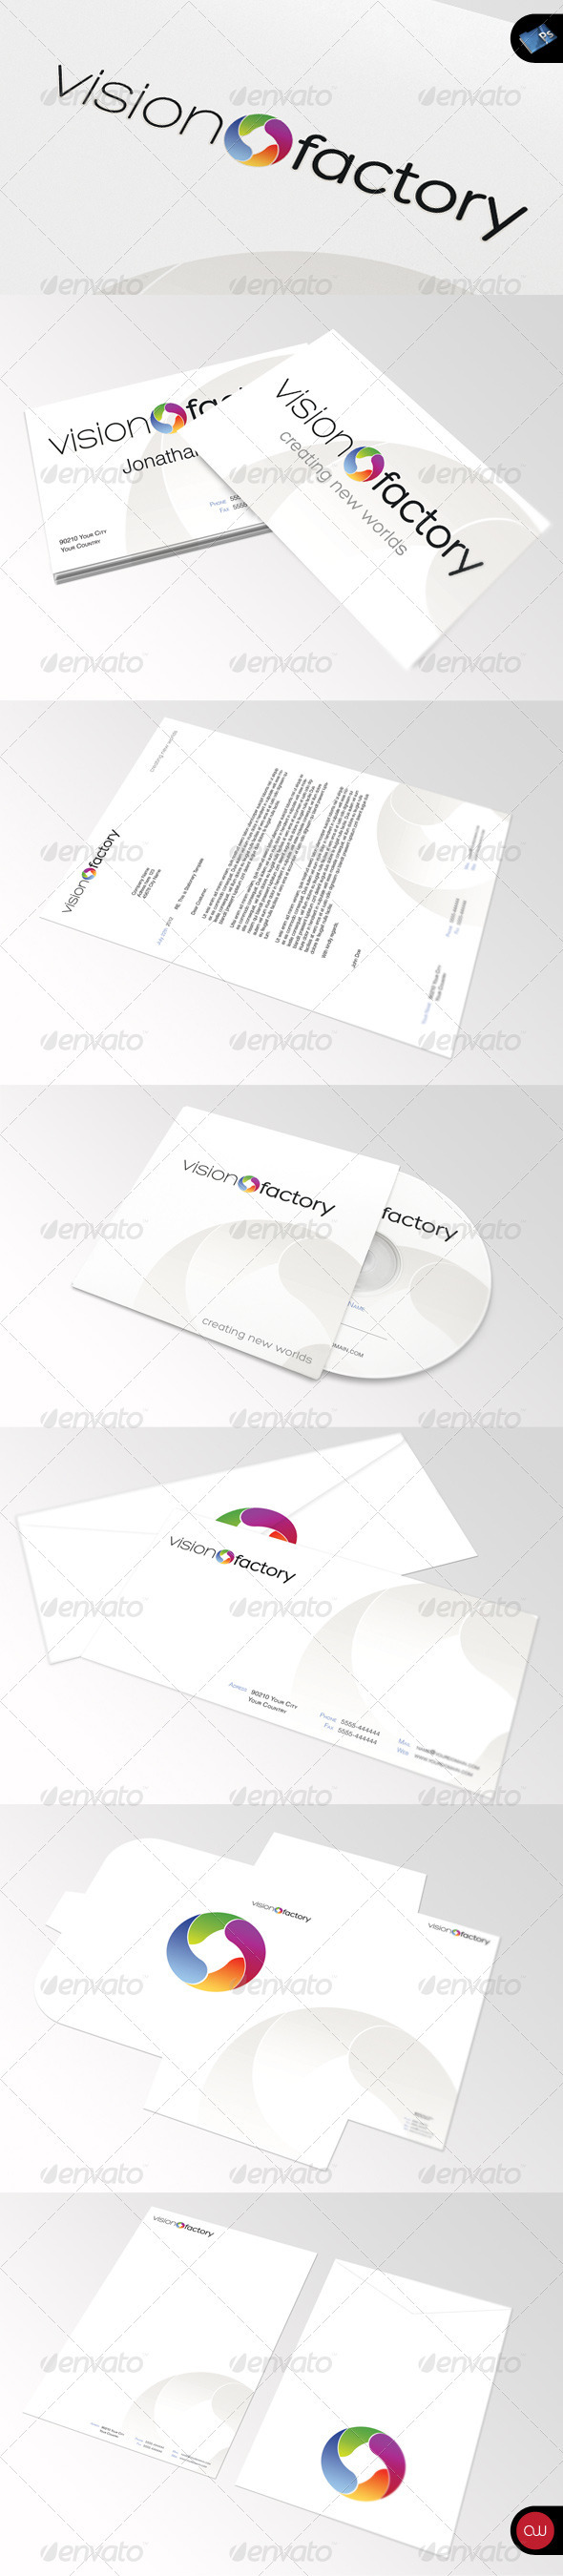 GraphicRiver Stationary & Identity Vision Factory 648811